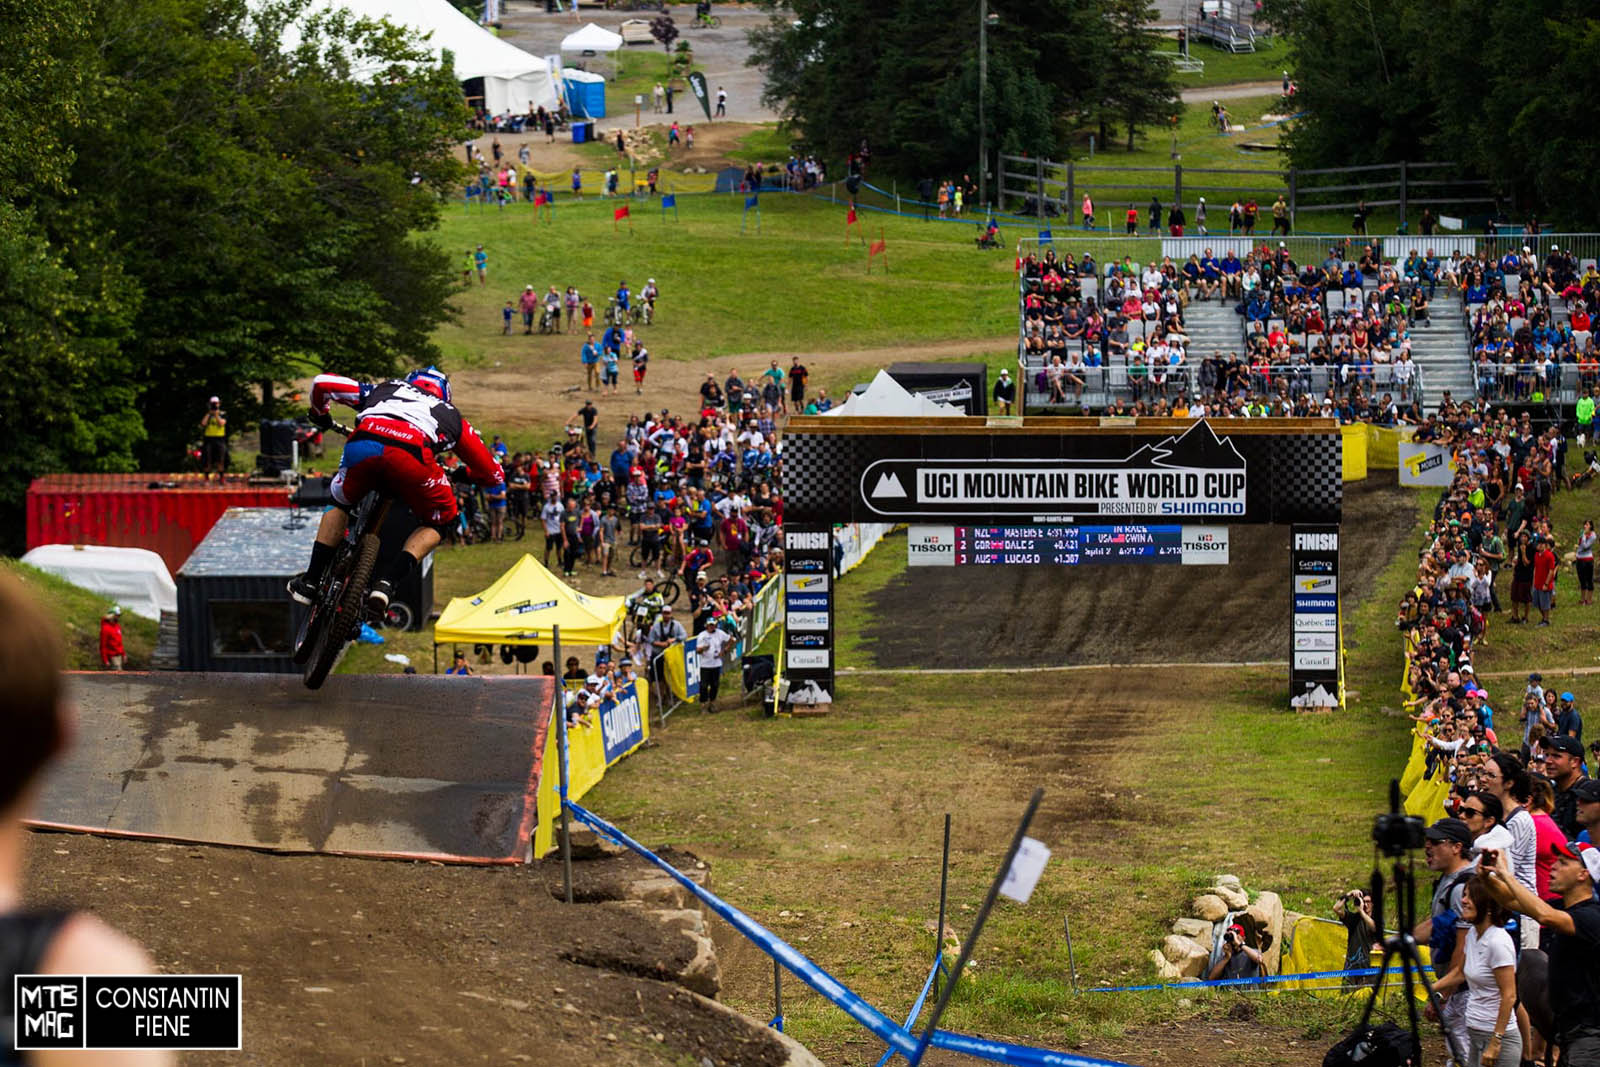 Aaron Gwin - Until Loic came down, it looked like he could've had a winning run.